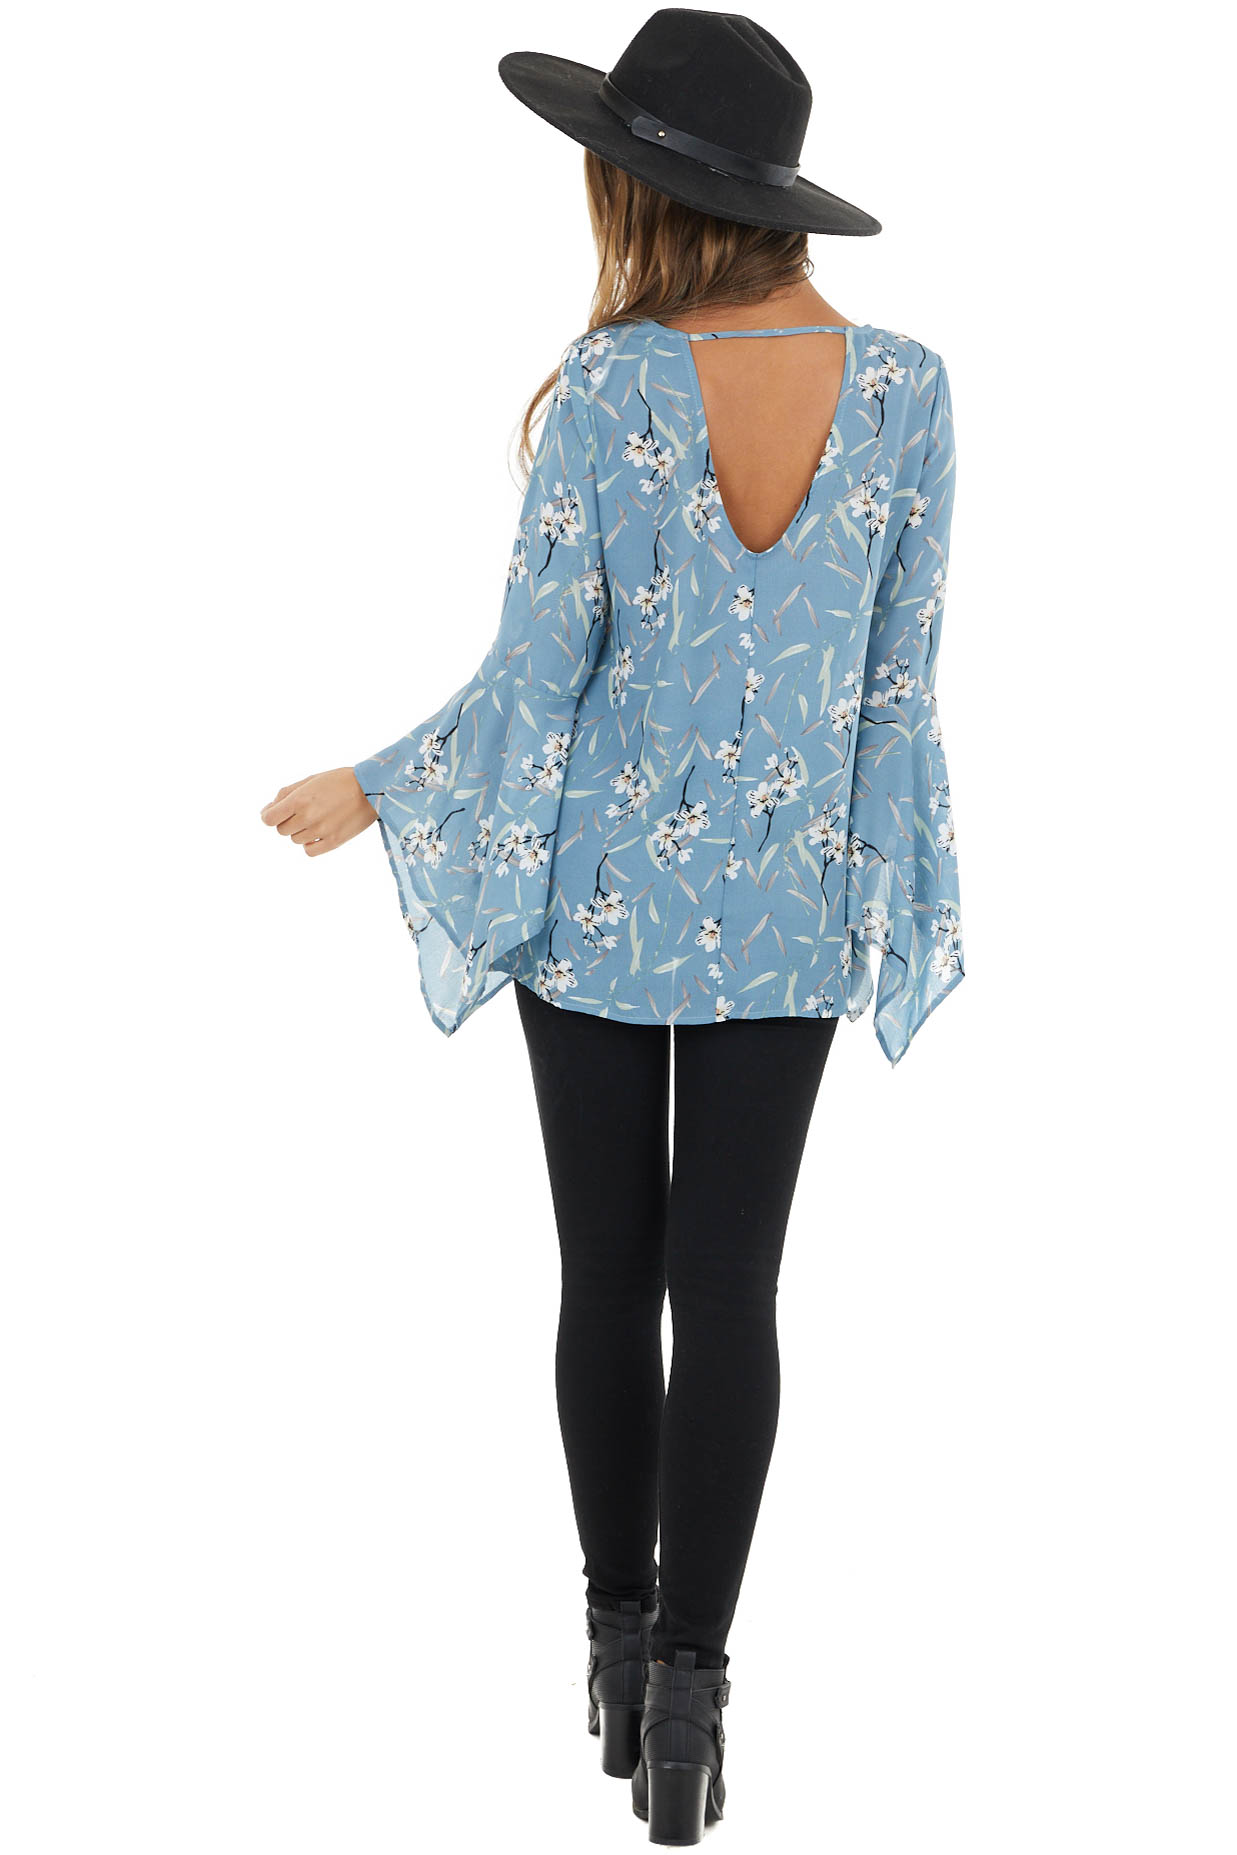 Cornflower Floral Print Flare Sleeve Blouse with Back Cutout